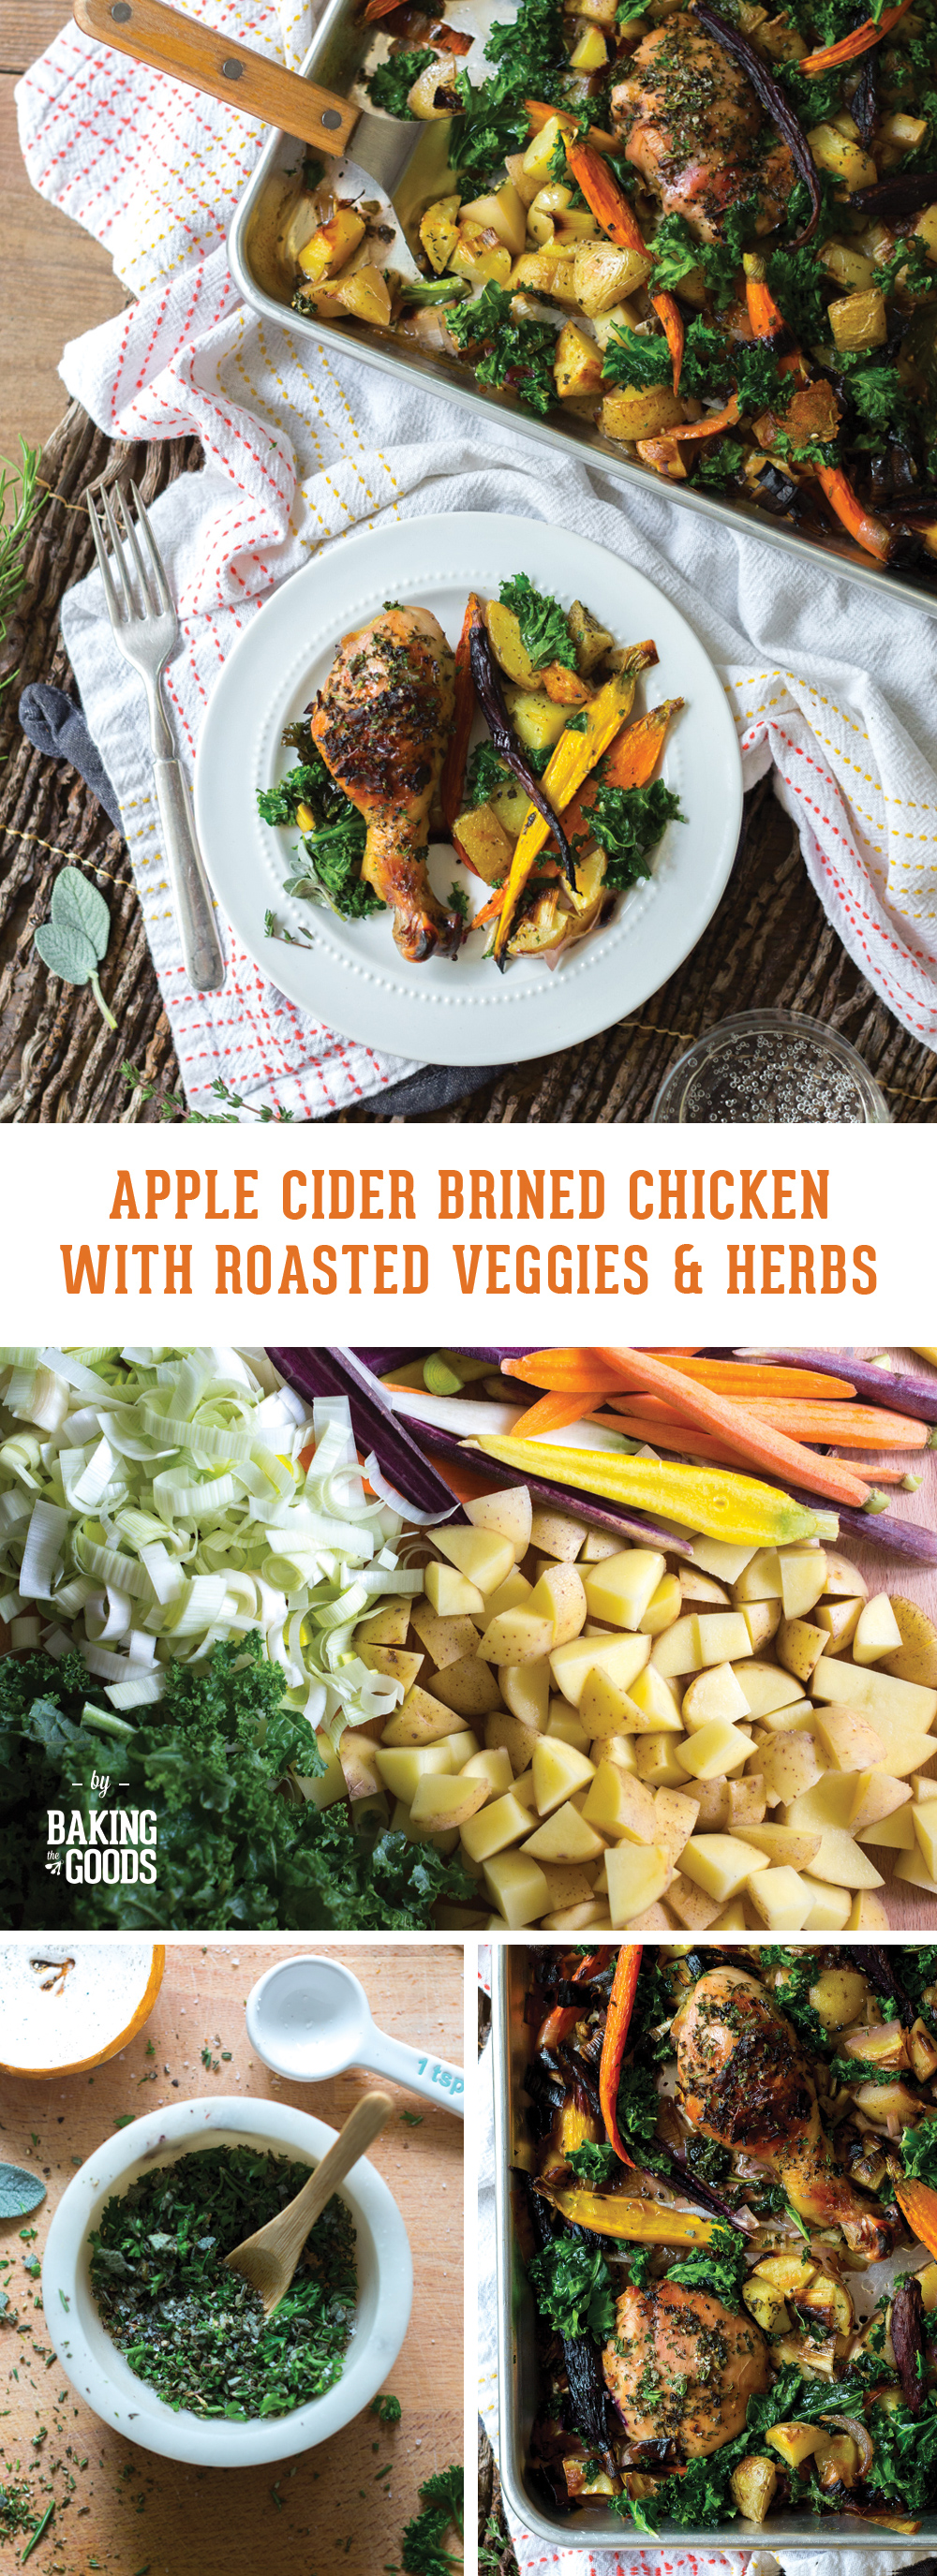 Apple Cider Brined Chicken with Roasted Veggies & Herbs by Baking The Goods